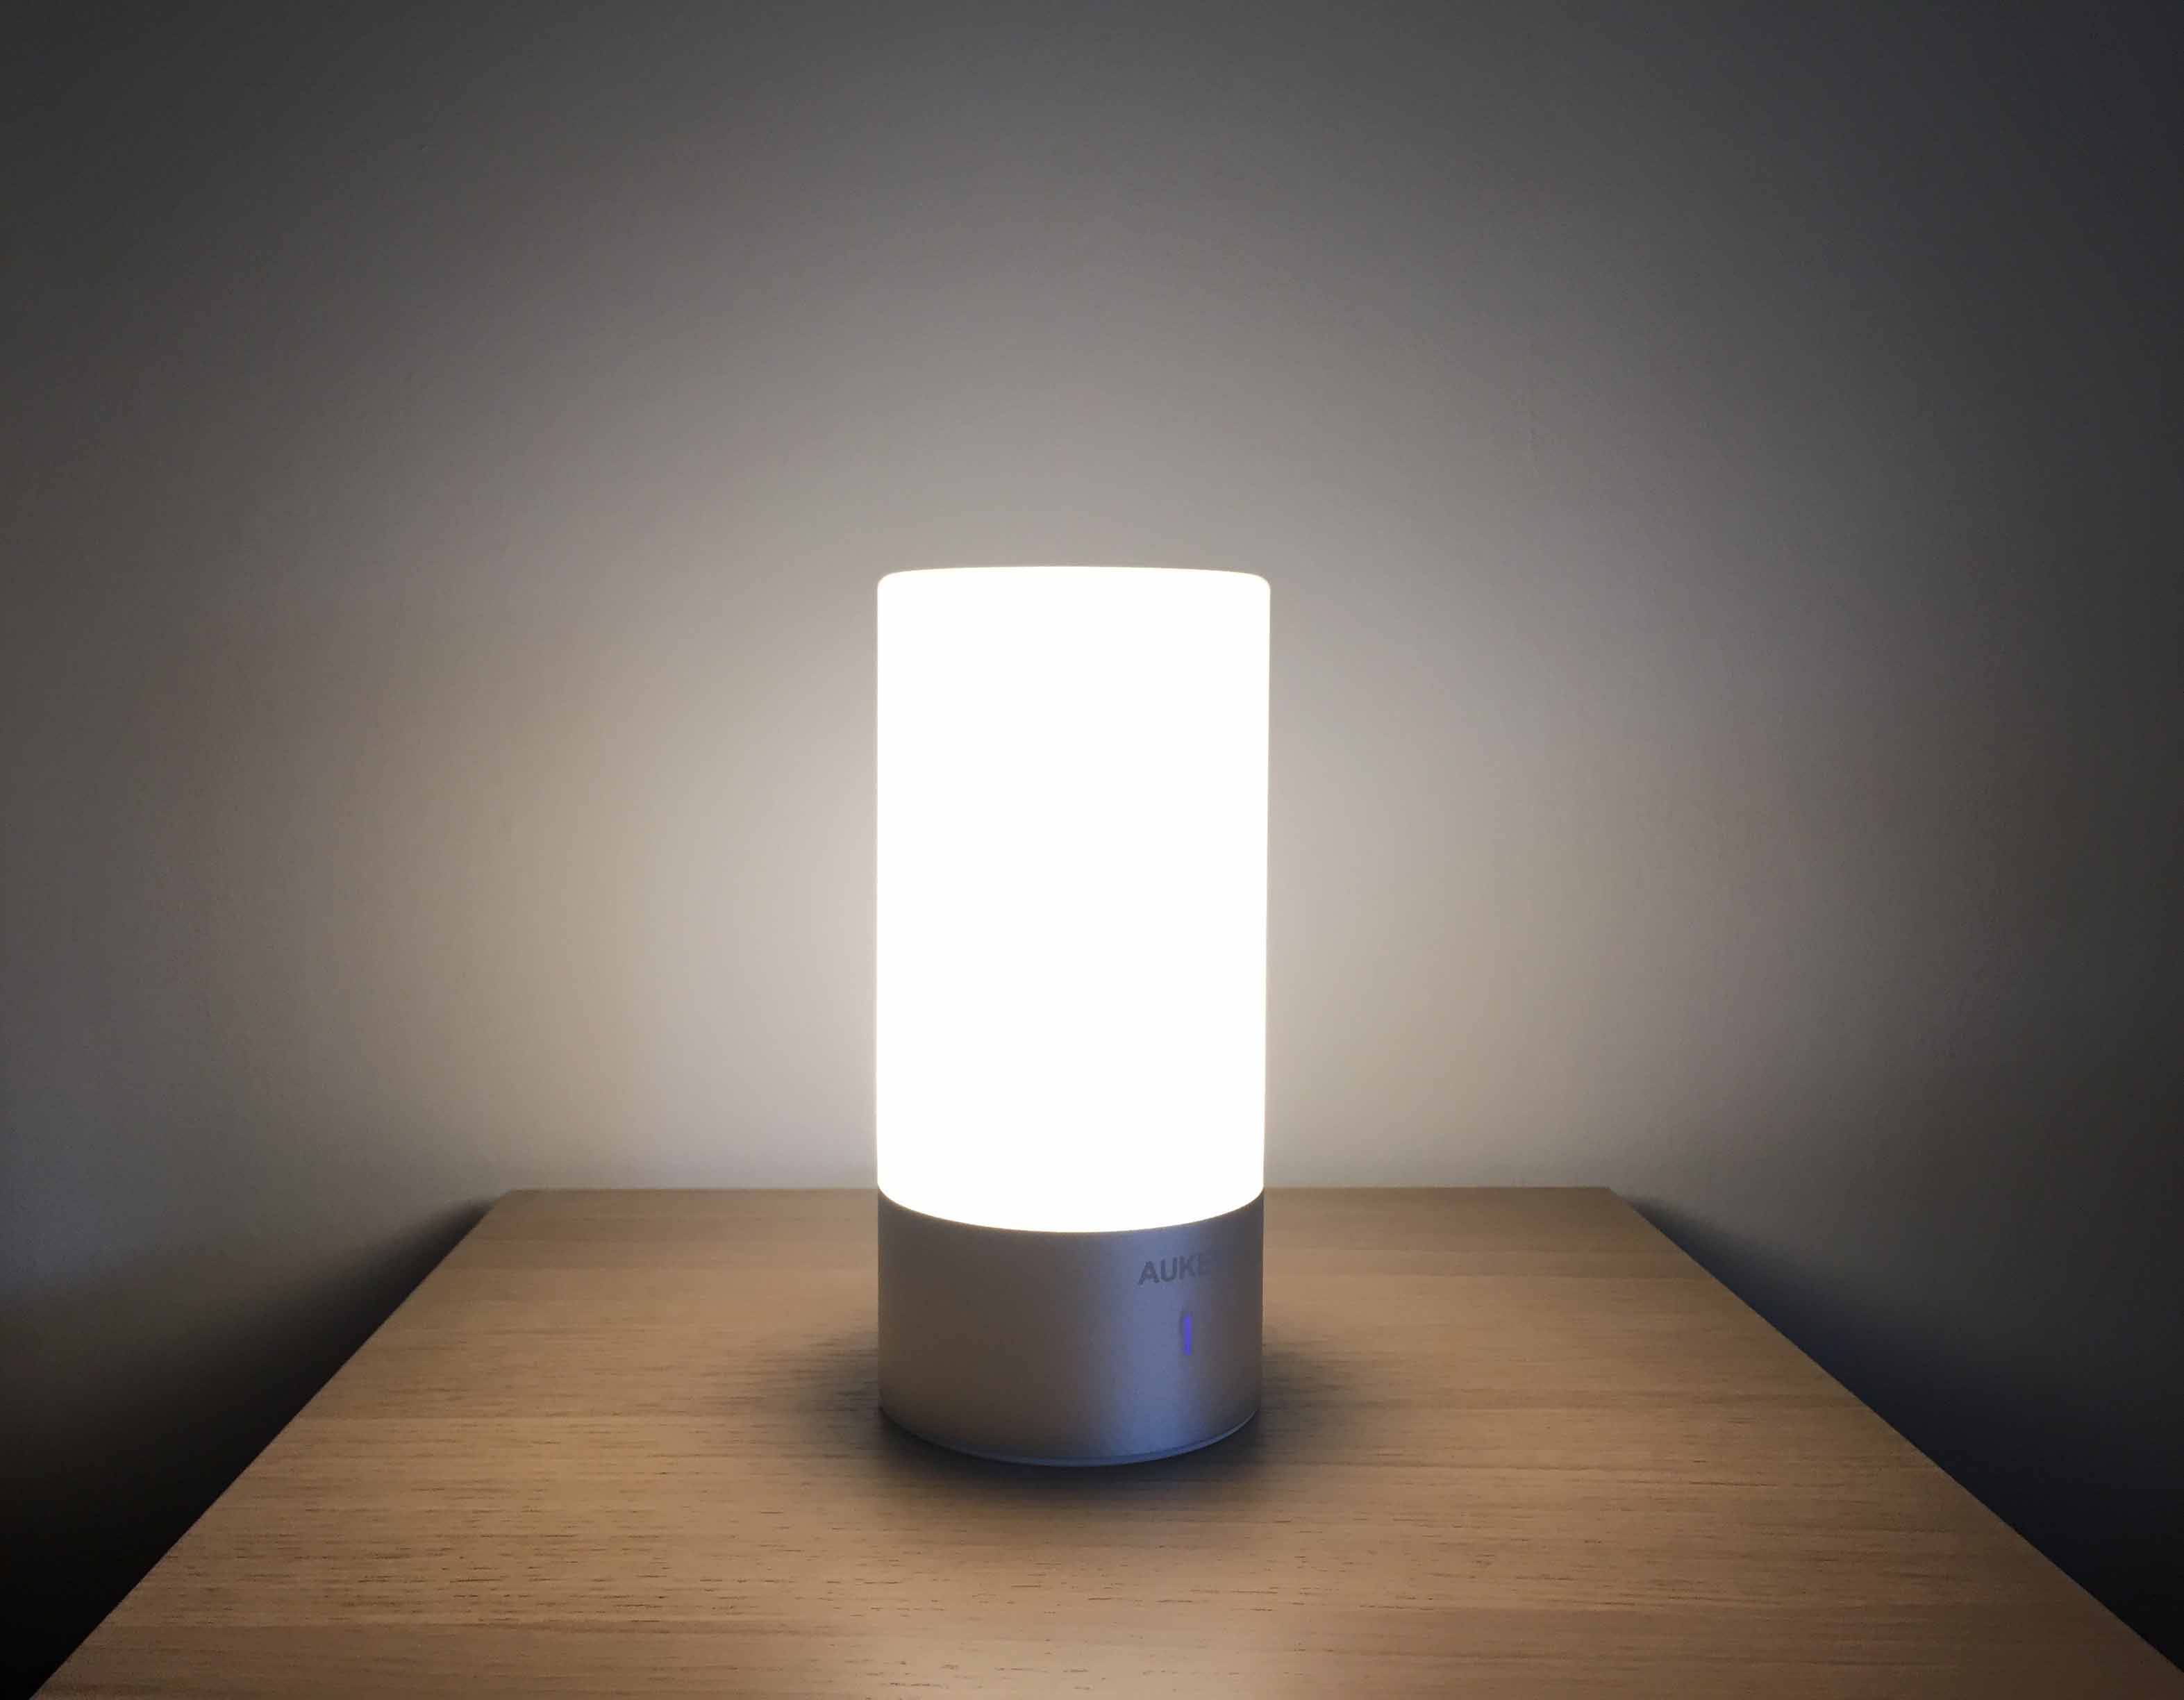 test de la lampe de chevet led aukey tactile blanc et couleurs with lampe de chevet tactile design. Black Bedroom Furniture Sets. Home Design Ideas